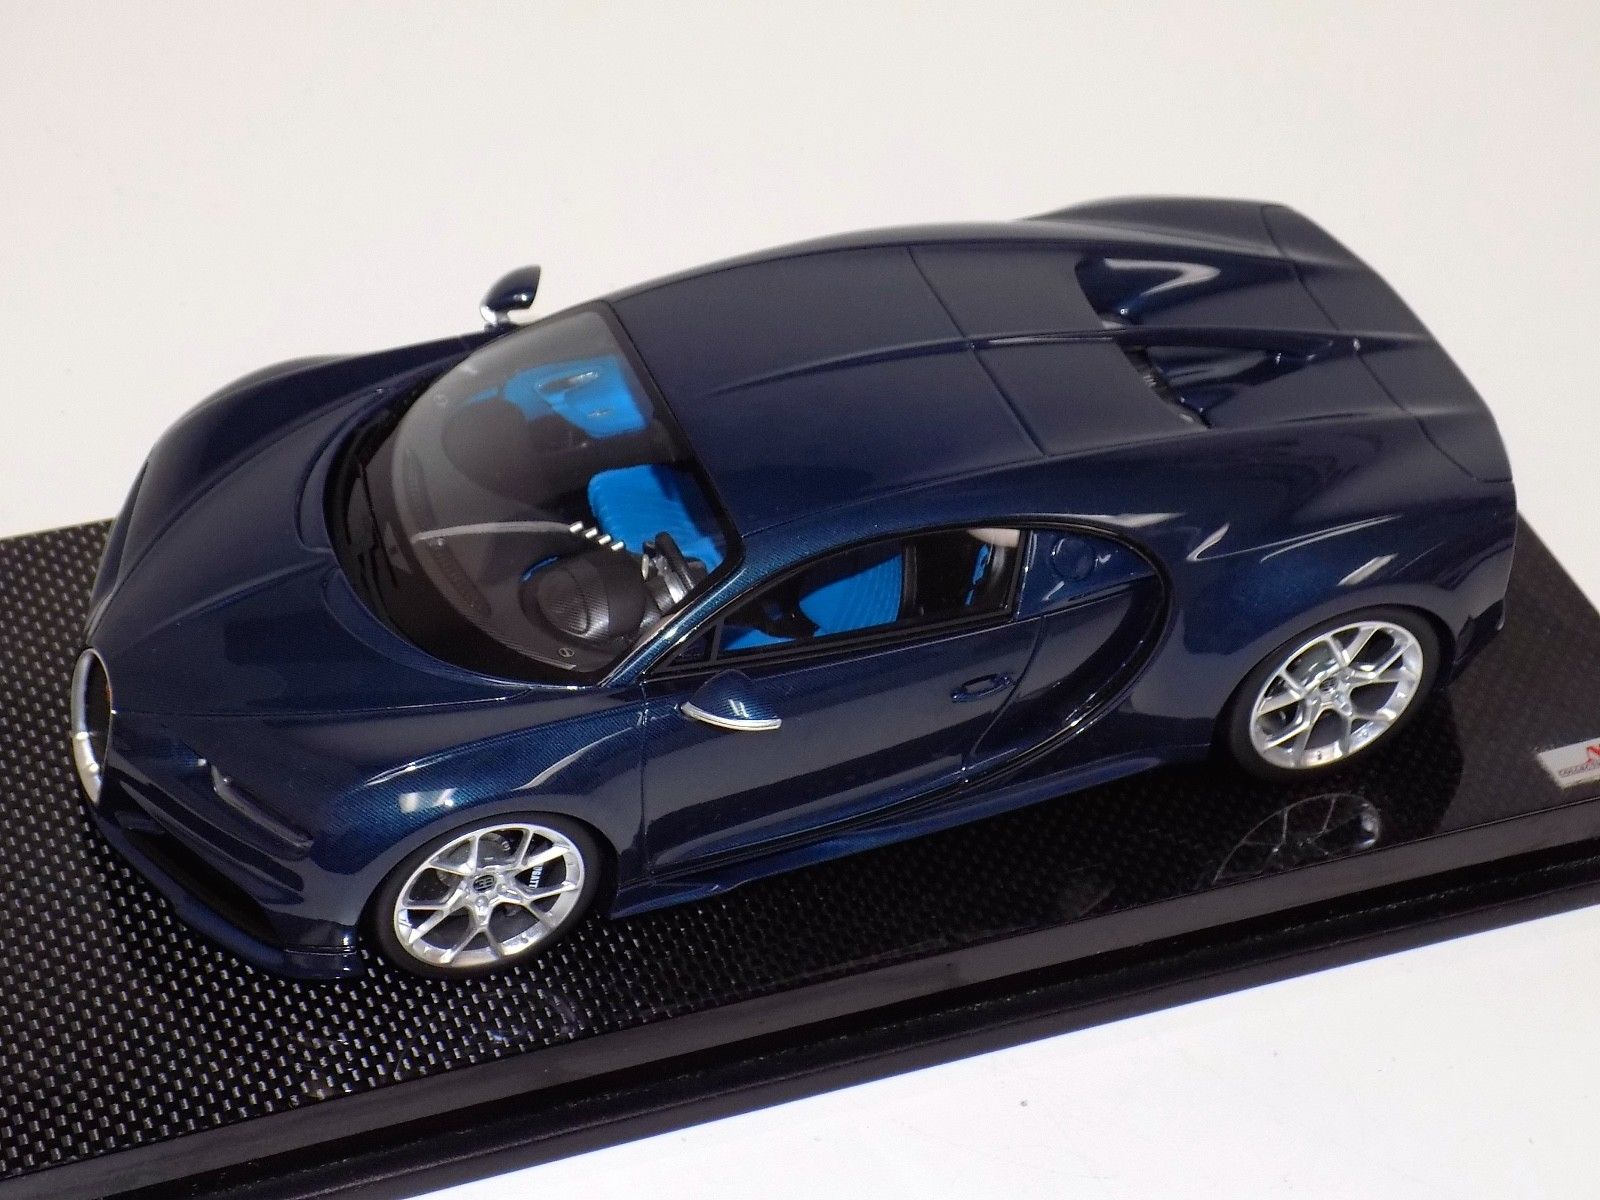 1:18 MR Collection Bugatti Chiron Blue Carbon Fiber Body on Carbon